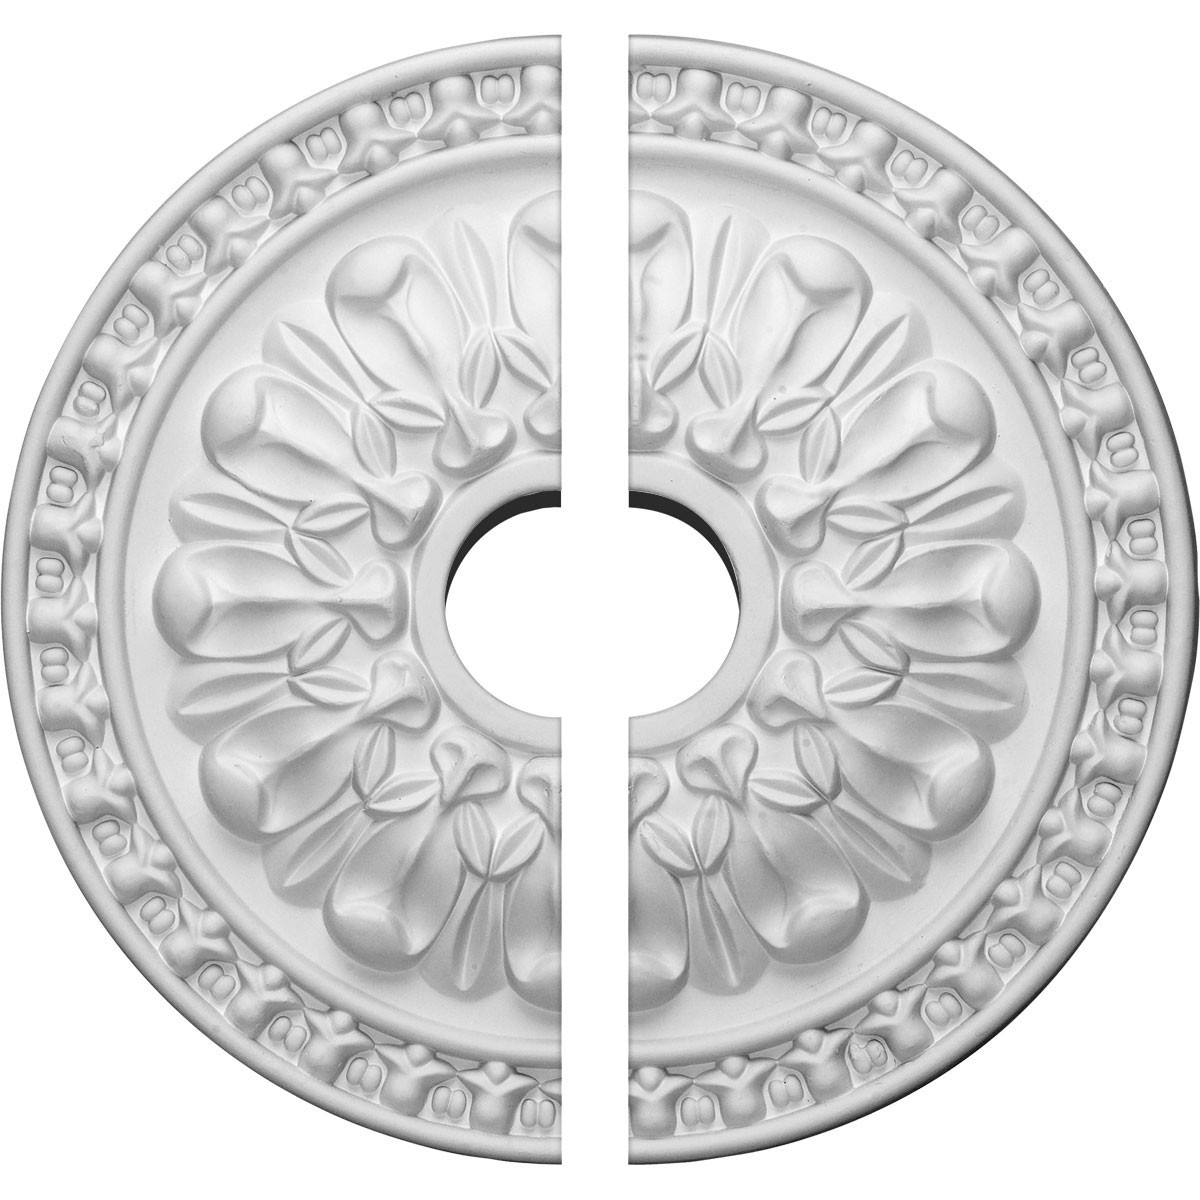 "EM-CM18WA2 - 18""OD x 3 1/2""ID x 1 3/8""P Warsaw Ceiling Medallion, Two Piece (Fits Canopies up to 3 1/2"")"